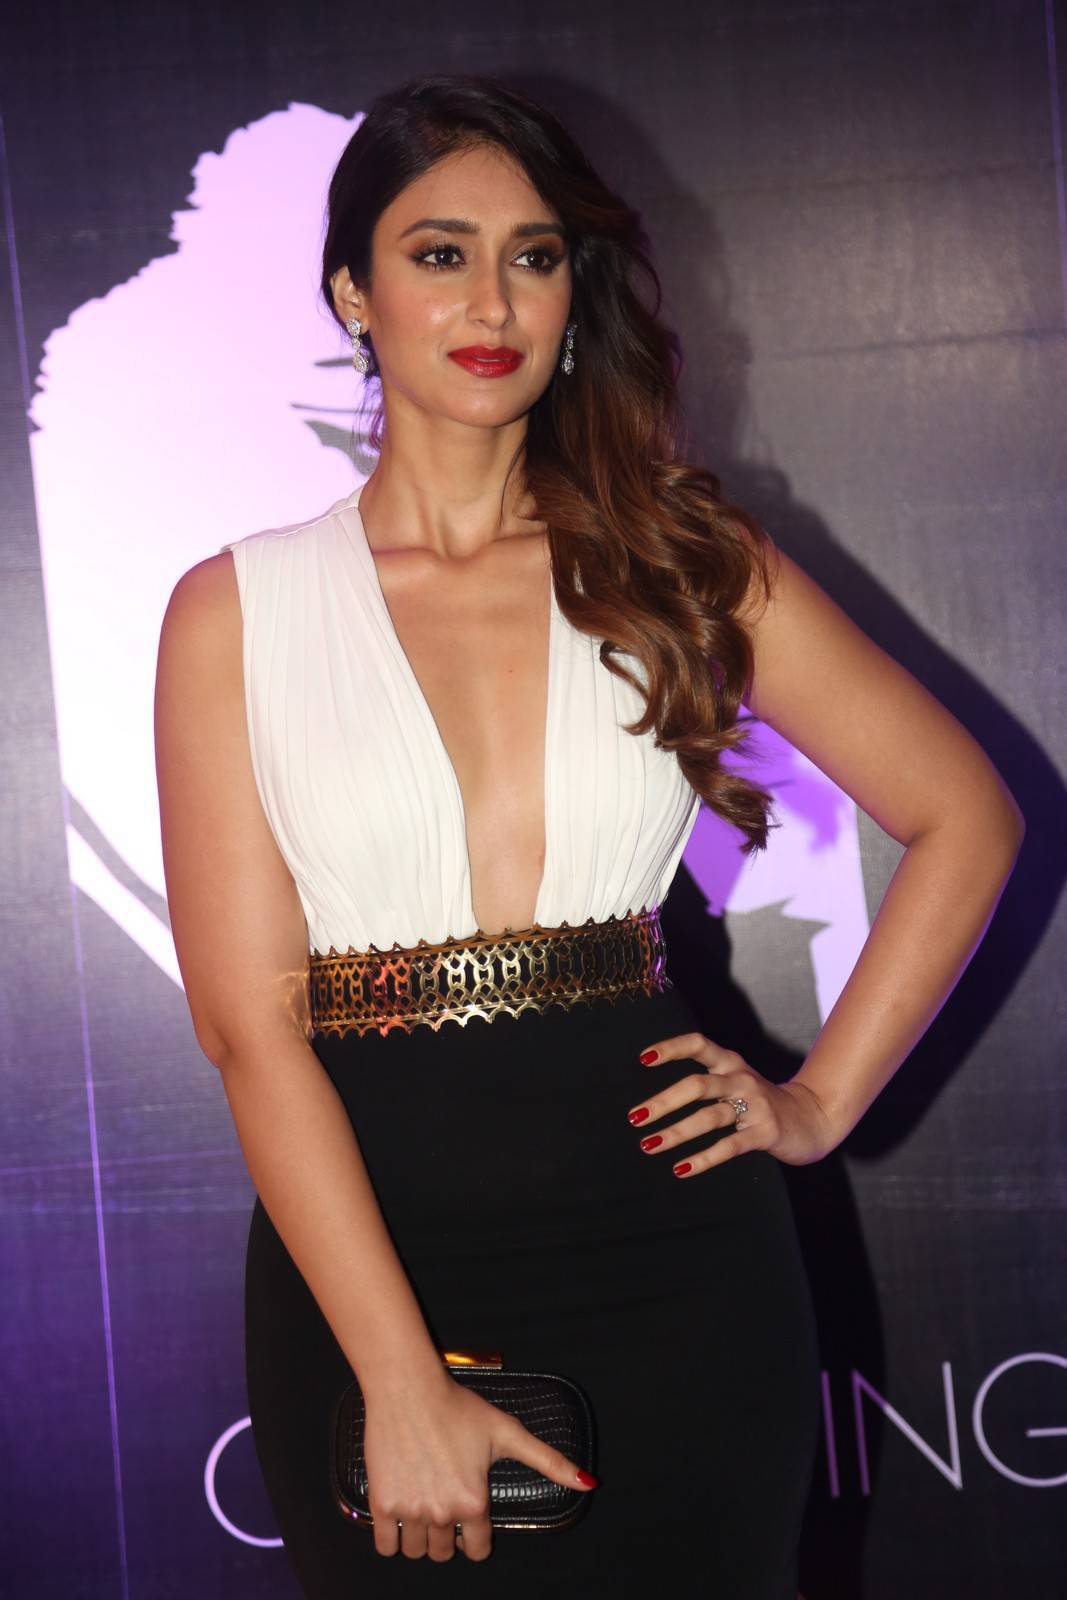 Glamorous Actress Ileana Hot In White Dress